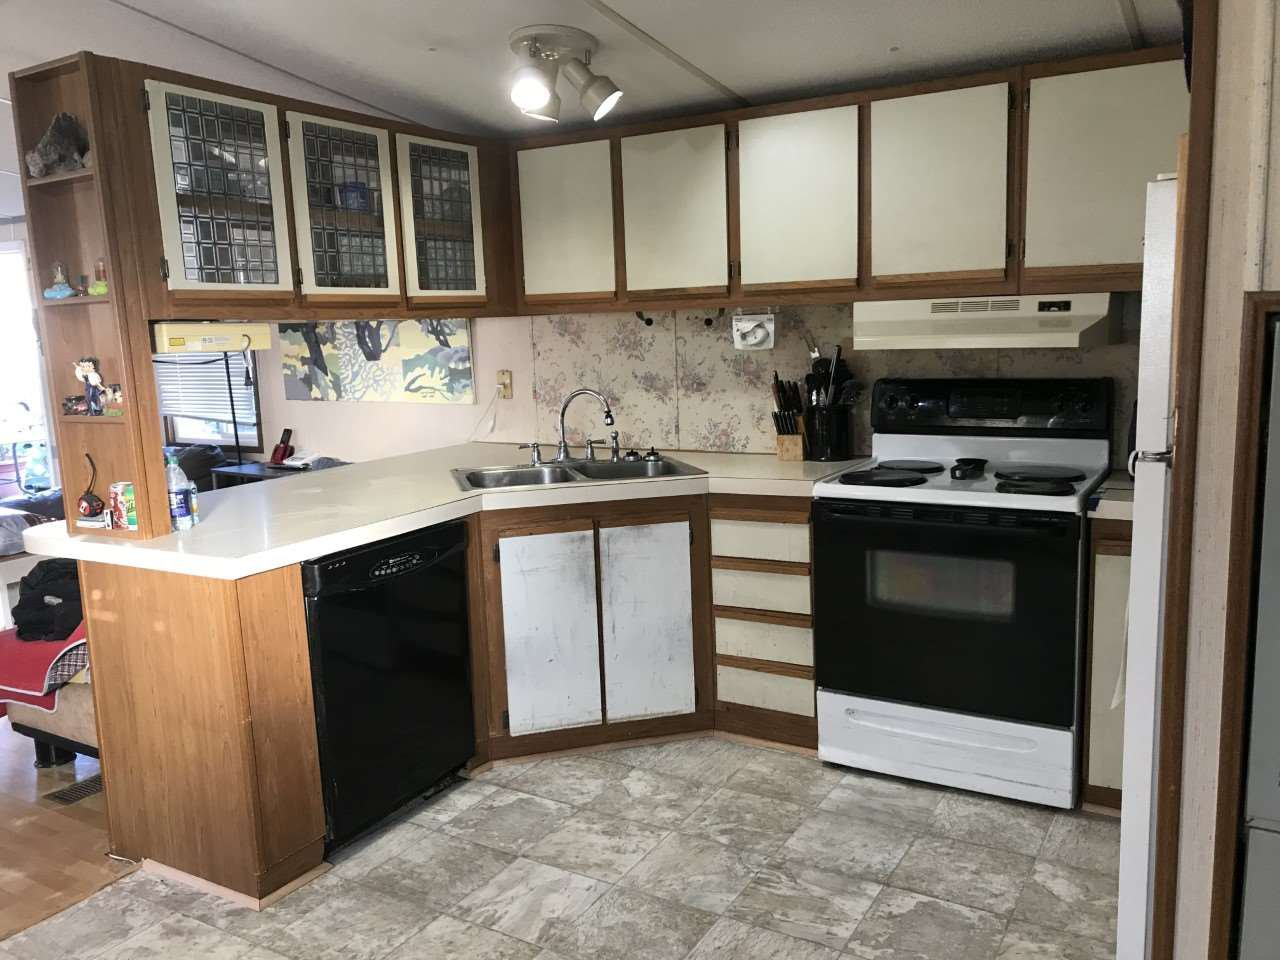 """Photo 7: Photos: 71 3300 HORN Street in Abbotsford: Central Abbotsford Manufactured Home for sale in """"Georgian Park"""" : MLS®# R2423912"""